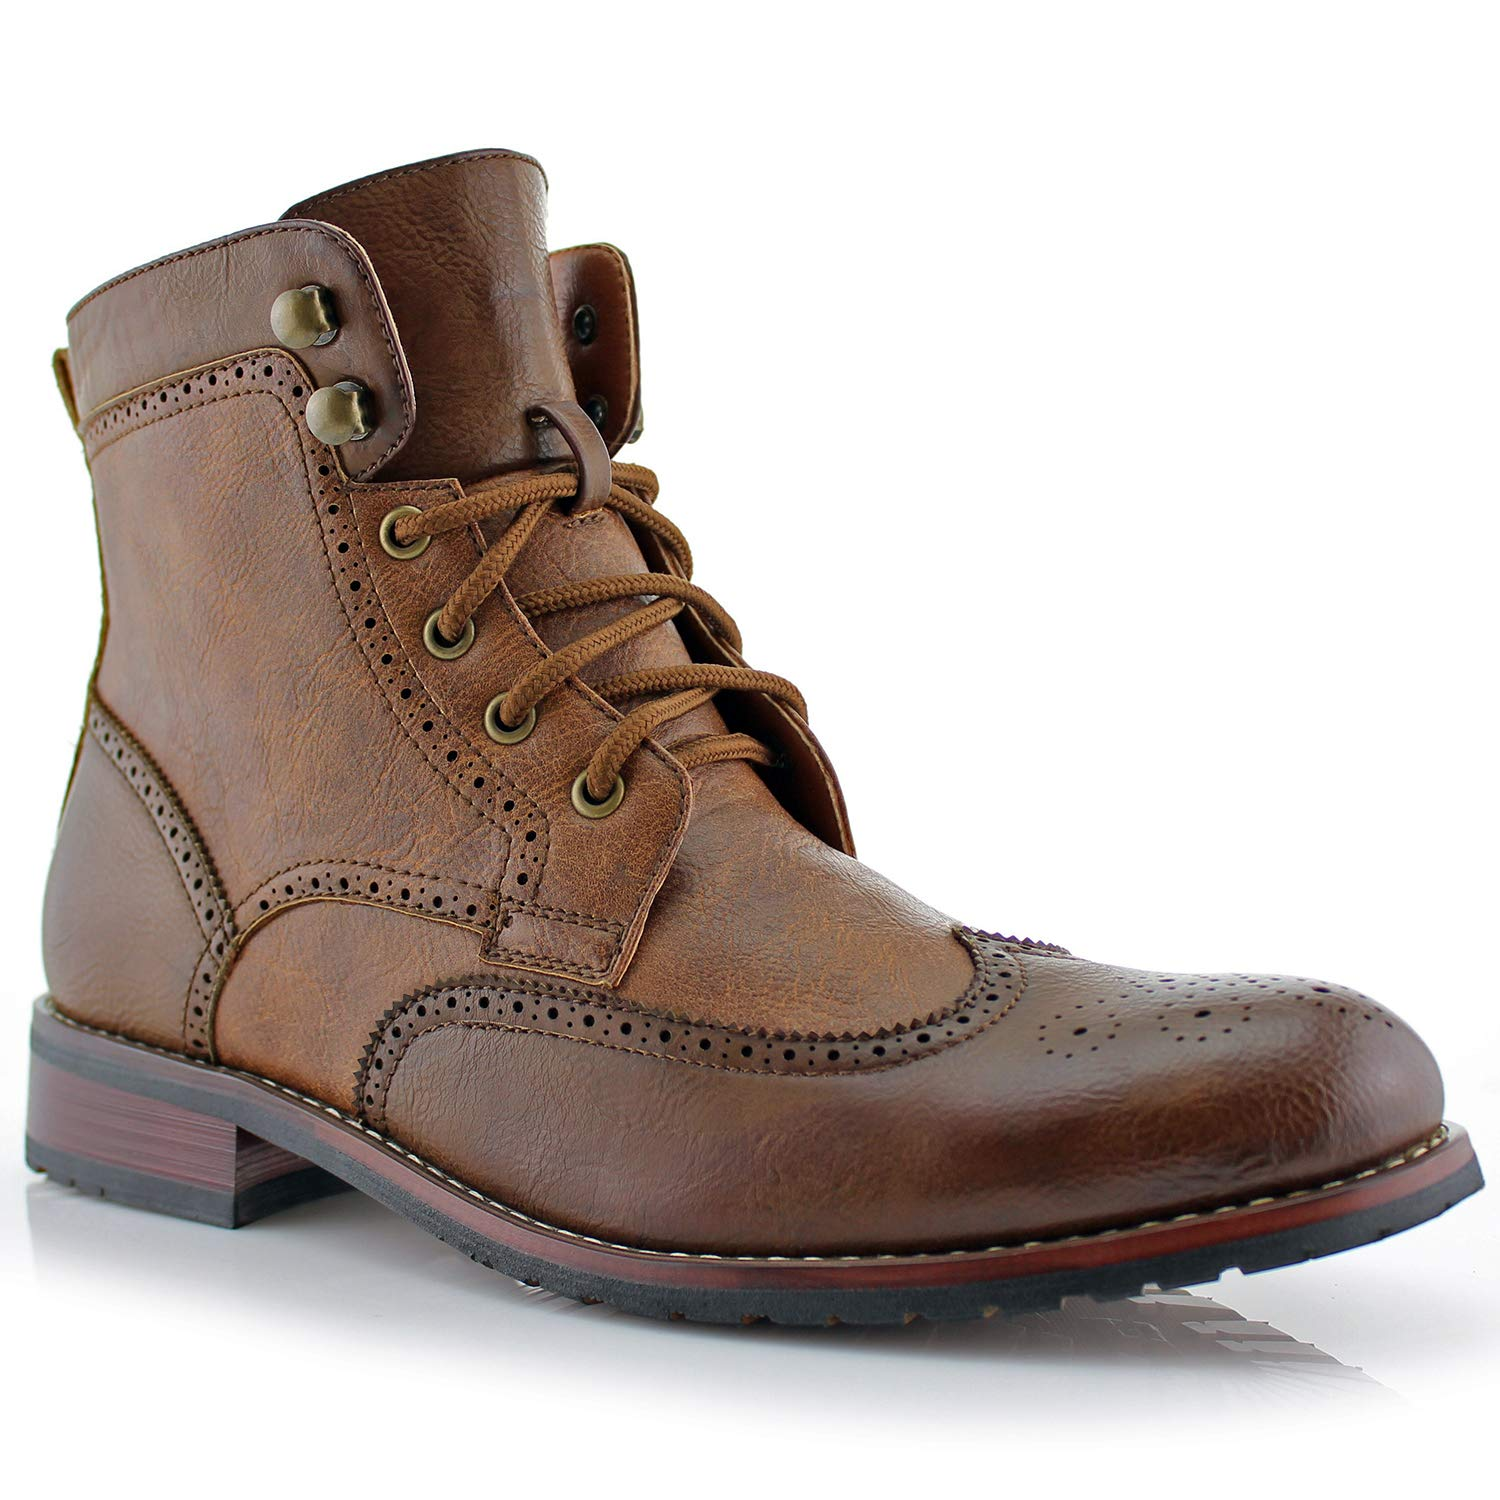 6a1f29d5fe19 Galleon - Polar Fox Jonah MPX808567 Mens Casual Perforated High-Top Red  Brogue Wingtip Dress Boots – Brown